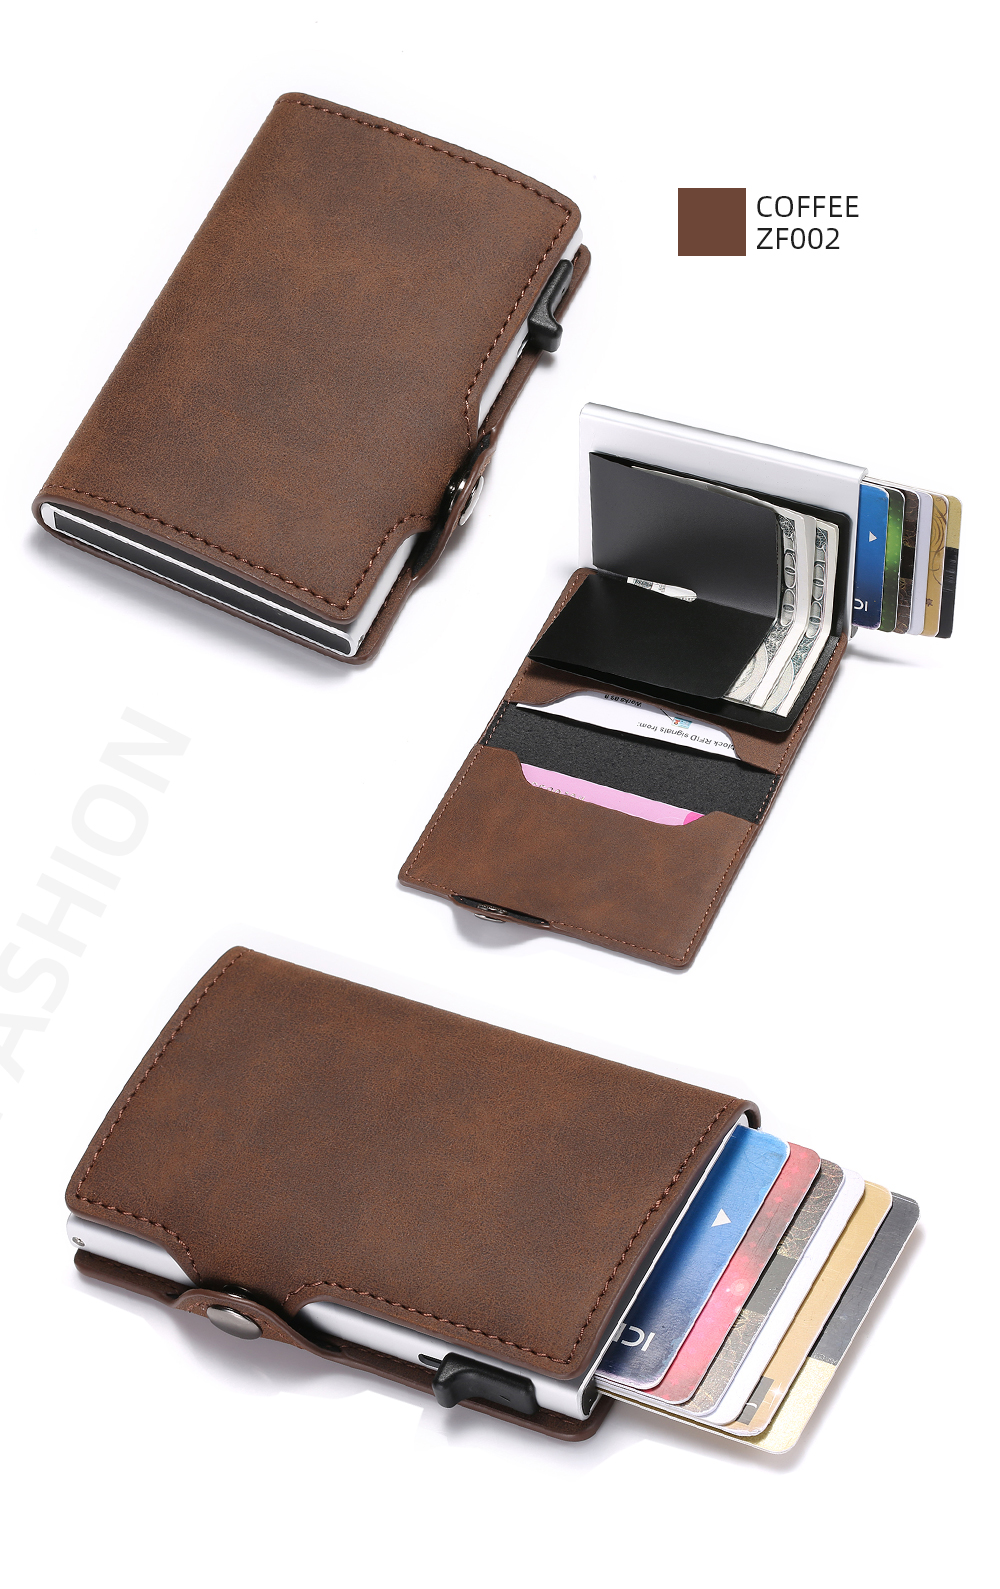 H3c7a4838e22d48a49744b722e405c368j - BISI GORO Single Box Card Holder PU Leather Card Wallet New Men RFID Blocking Aluminum Smart Multifunction Slim Wallet Card Case